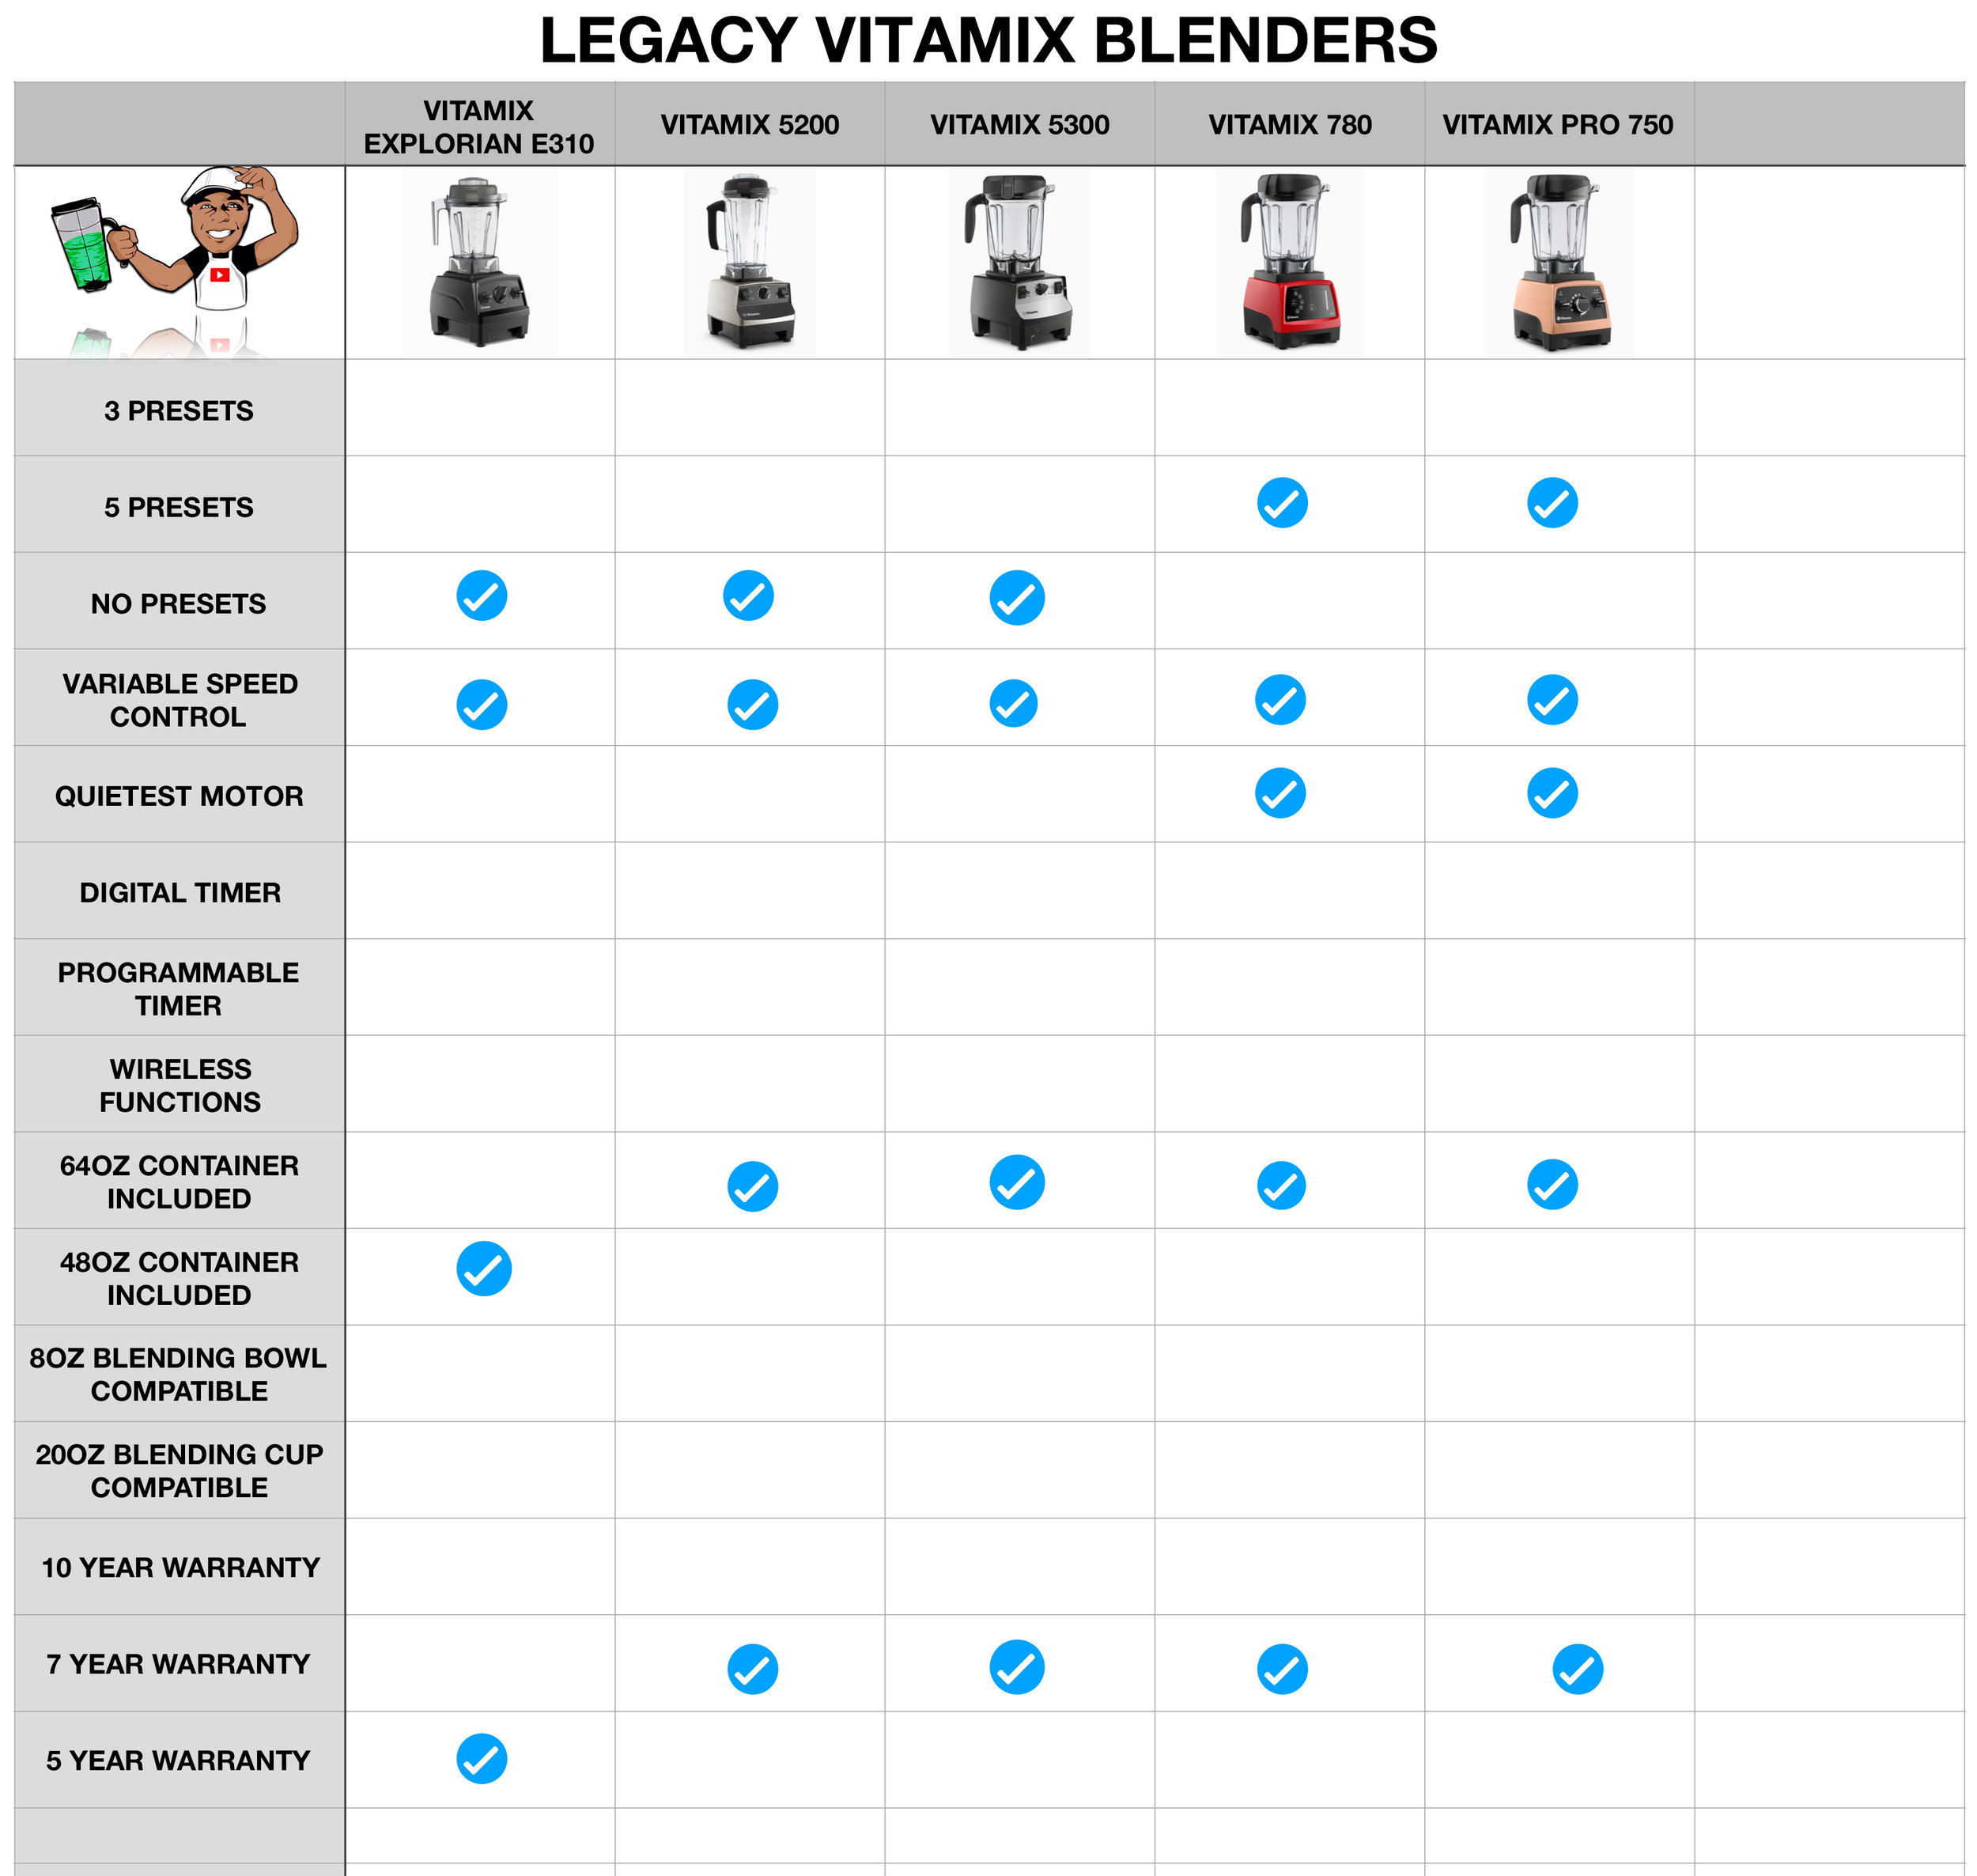 Ascent comparison chart  legacy vitamix chartg also page  blending with henry rh blendingwithhenry